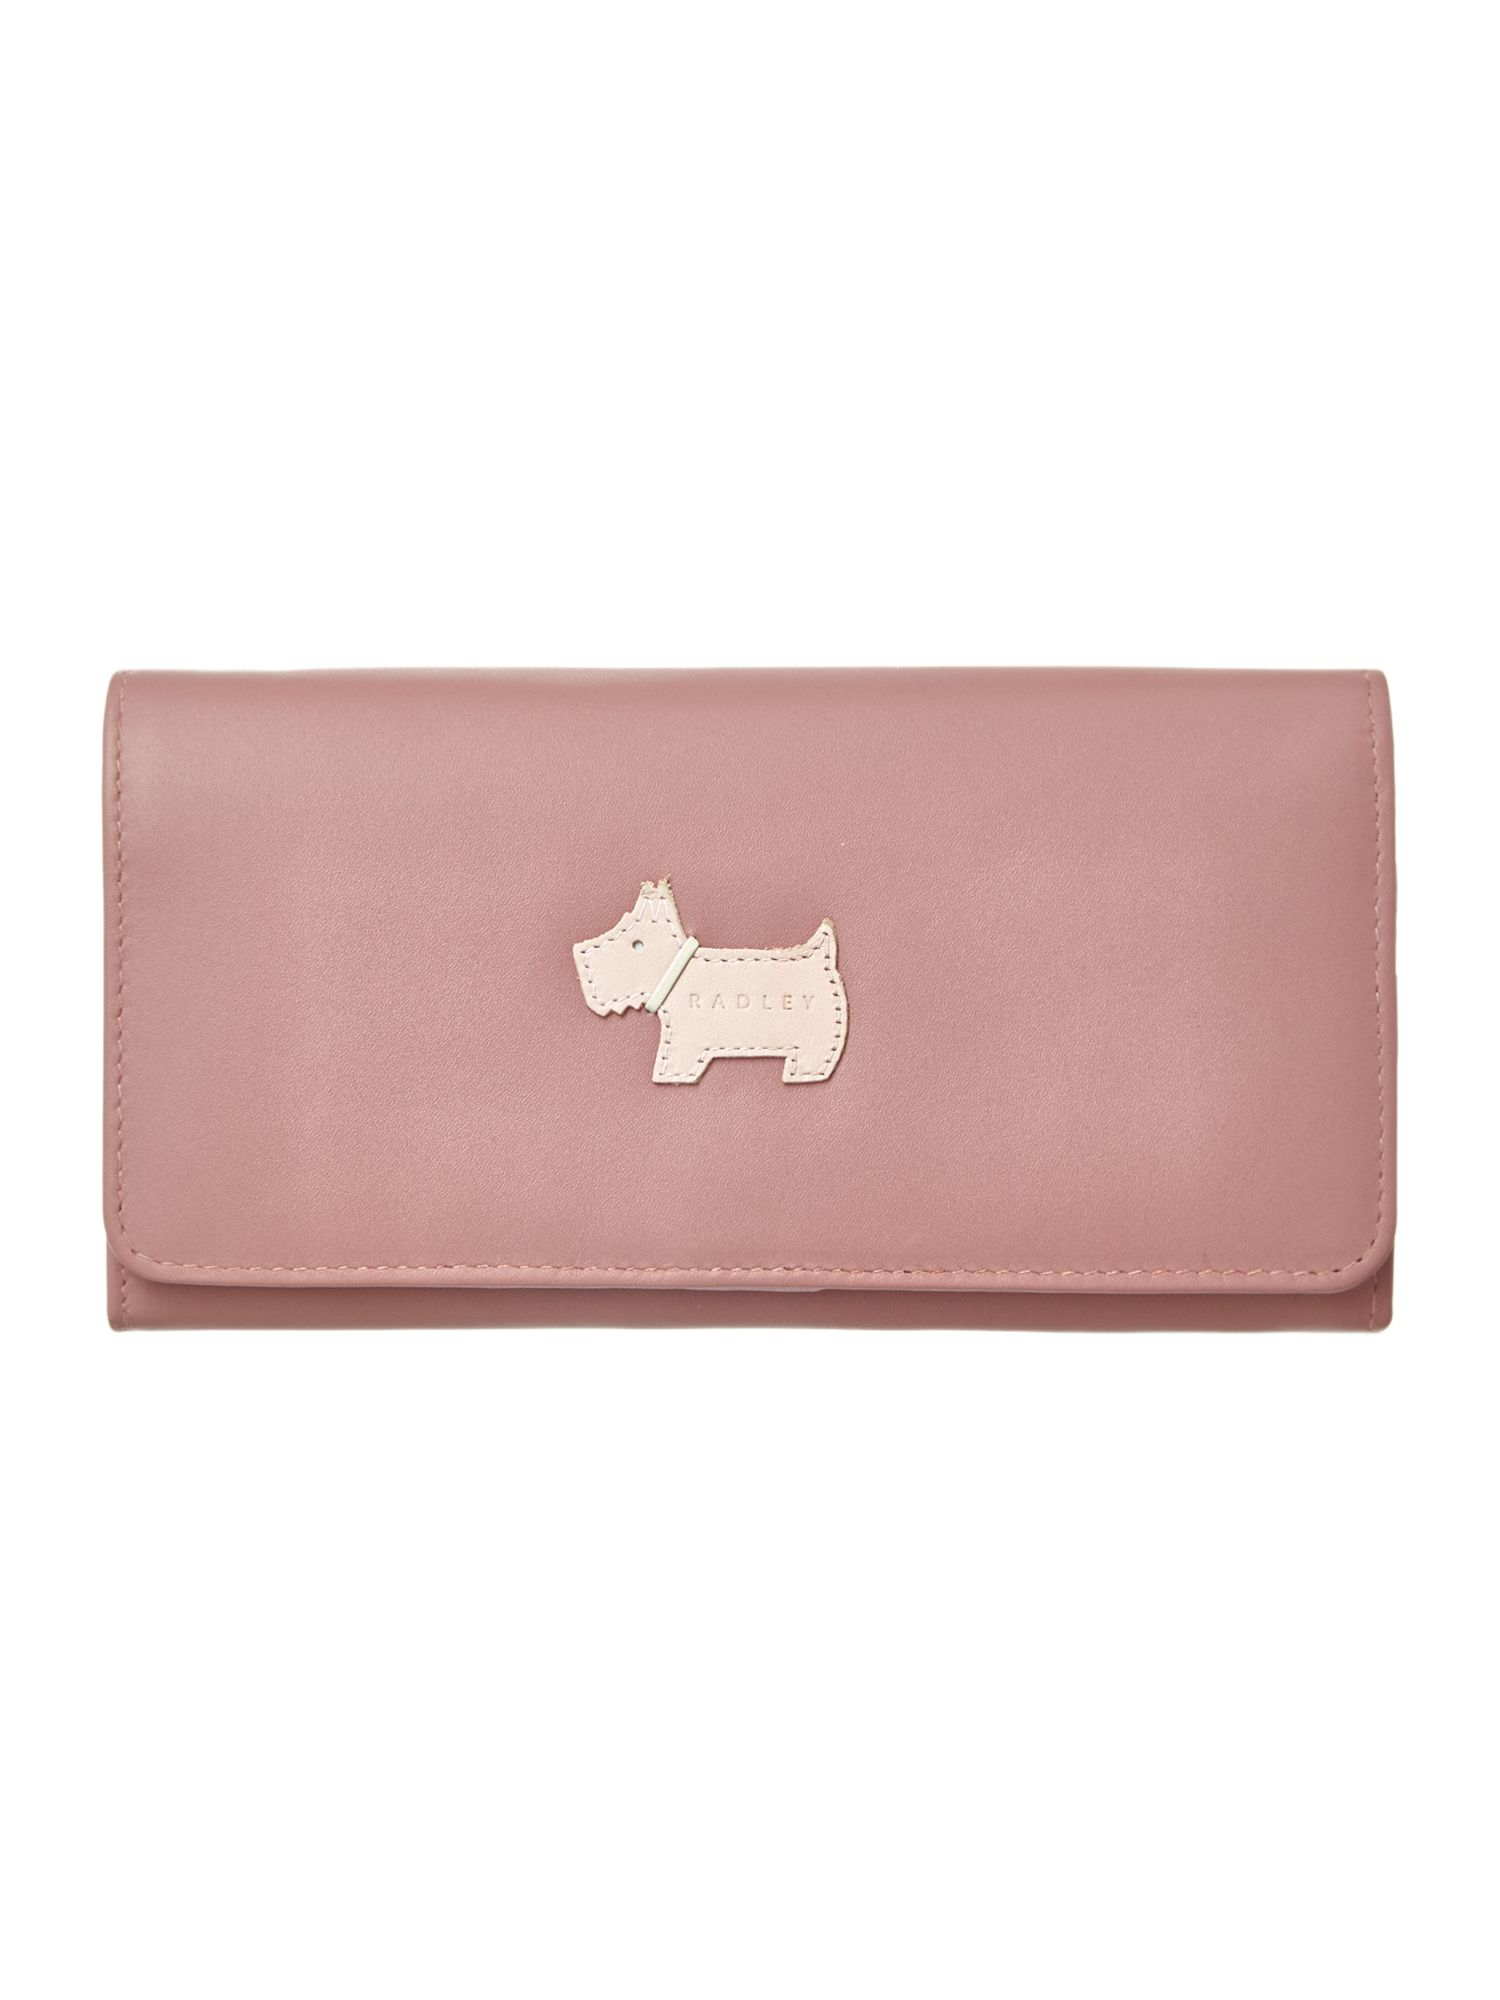 Heritage dog pink large flapover matinee purse